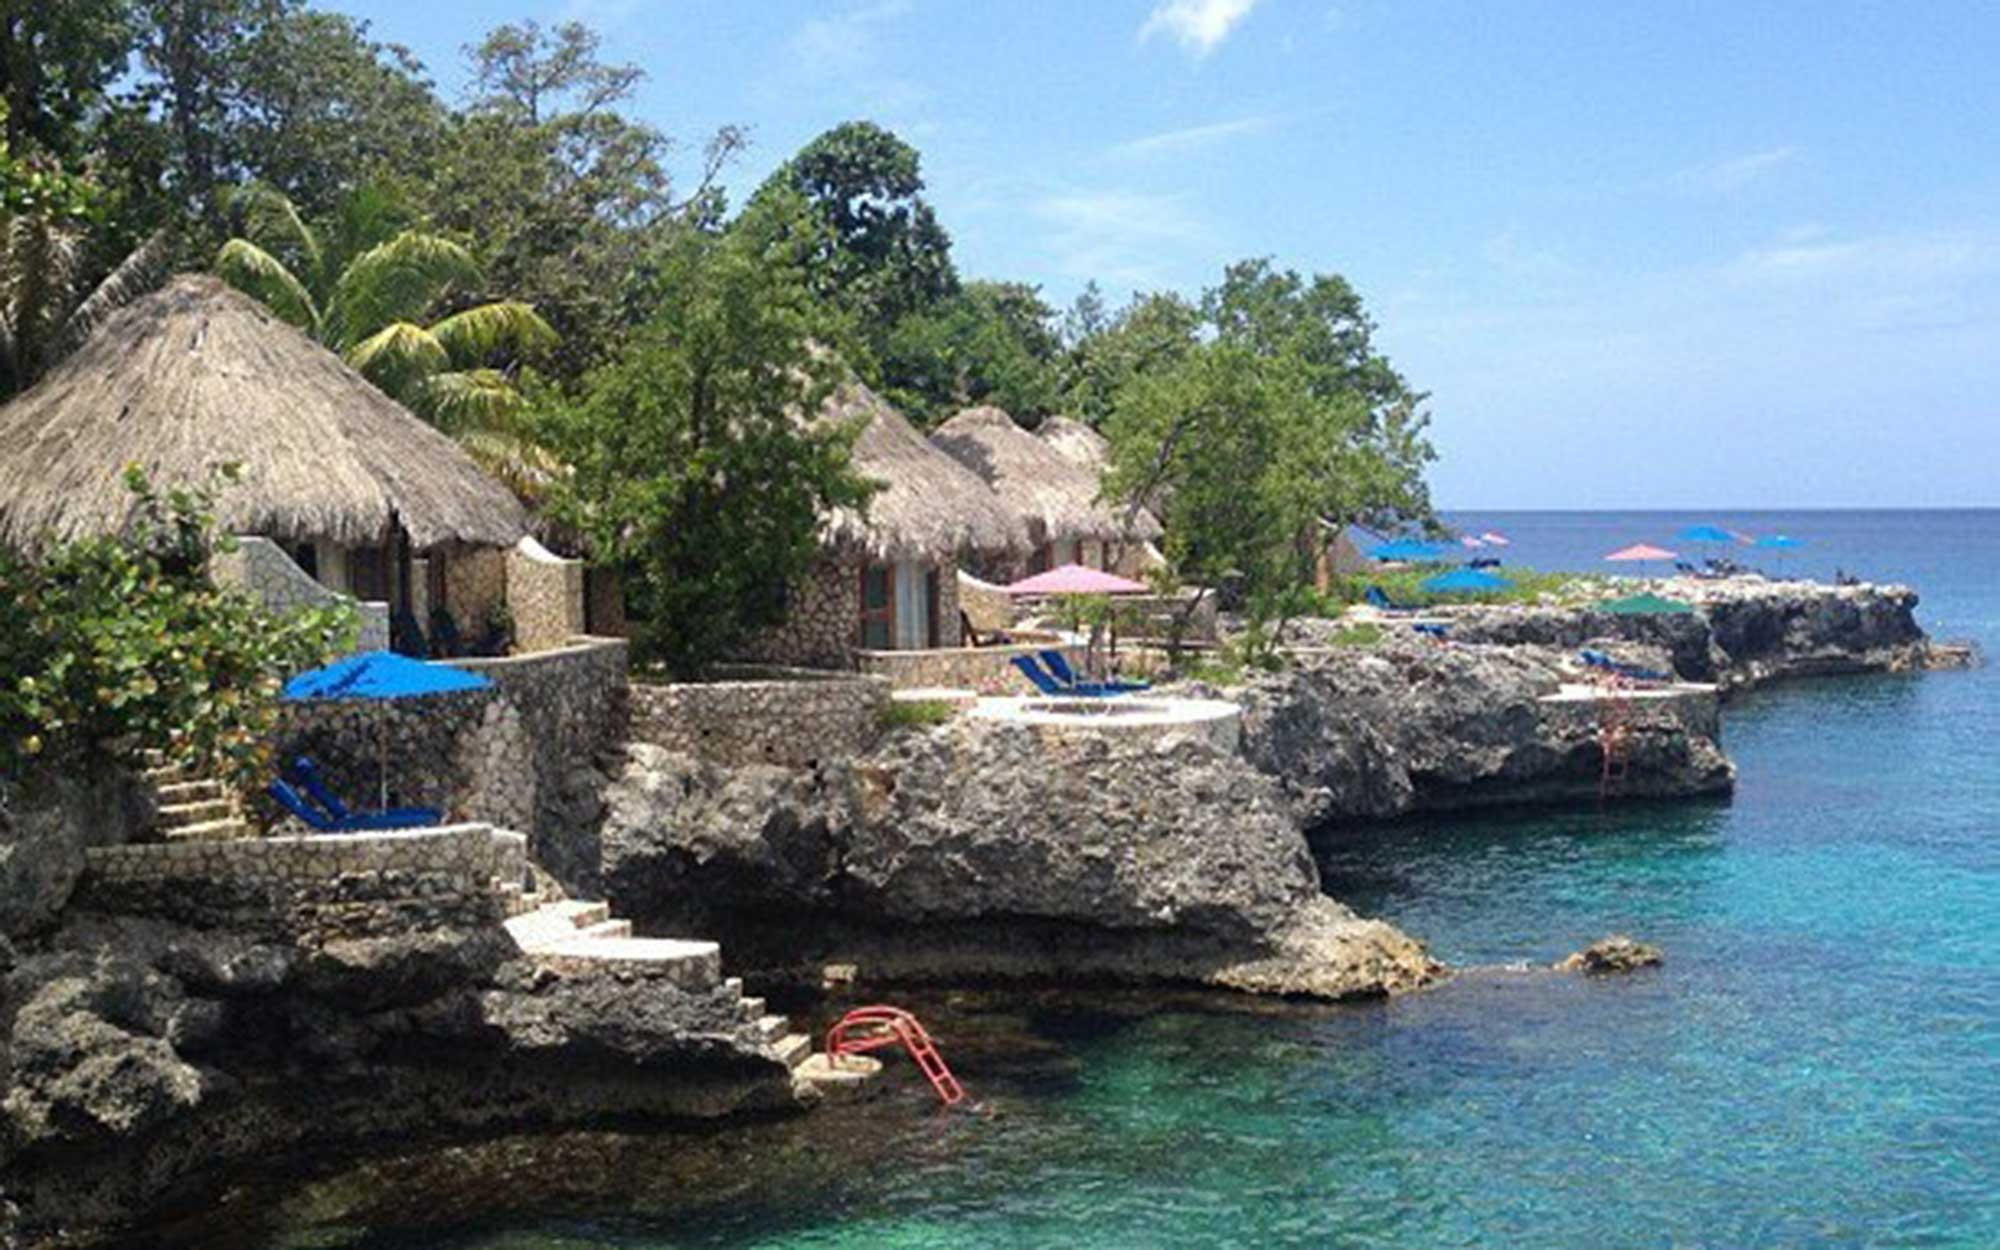 Best Romantic Summer Getaways: Jamaica